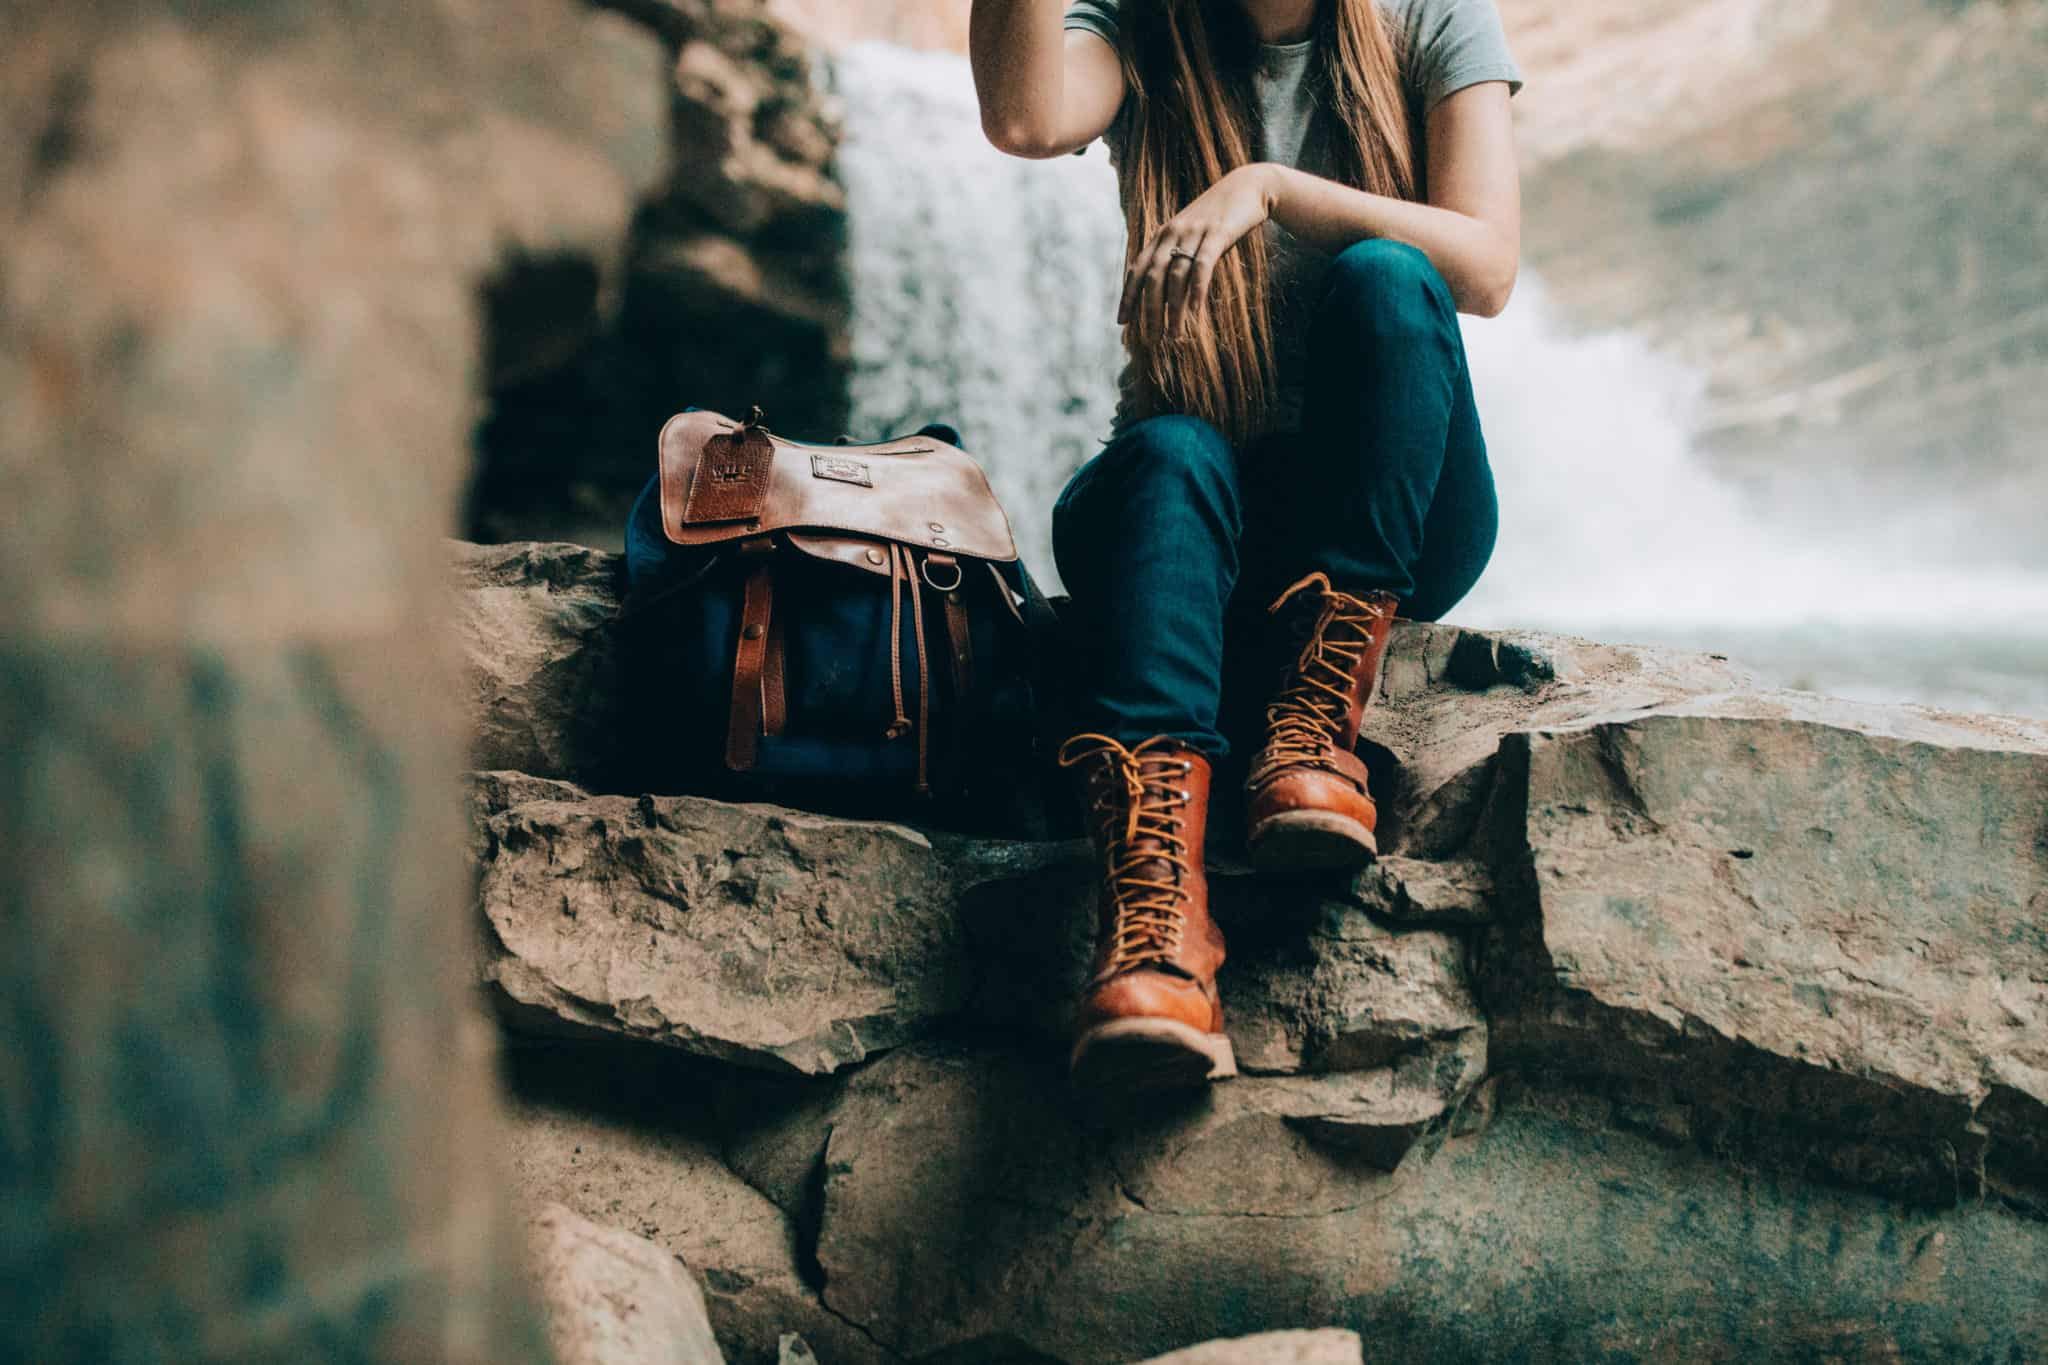 Emily Mandagie wearing 8-inch Moc Toe Red Wing Boots and Will Leather Goods Journey Backpack